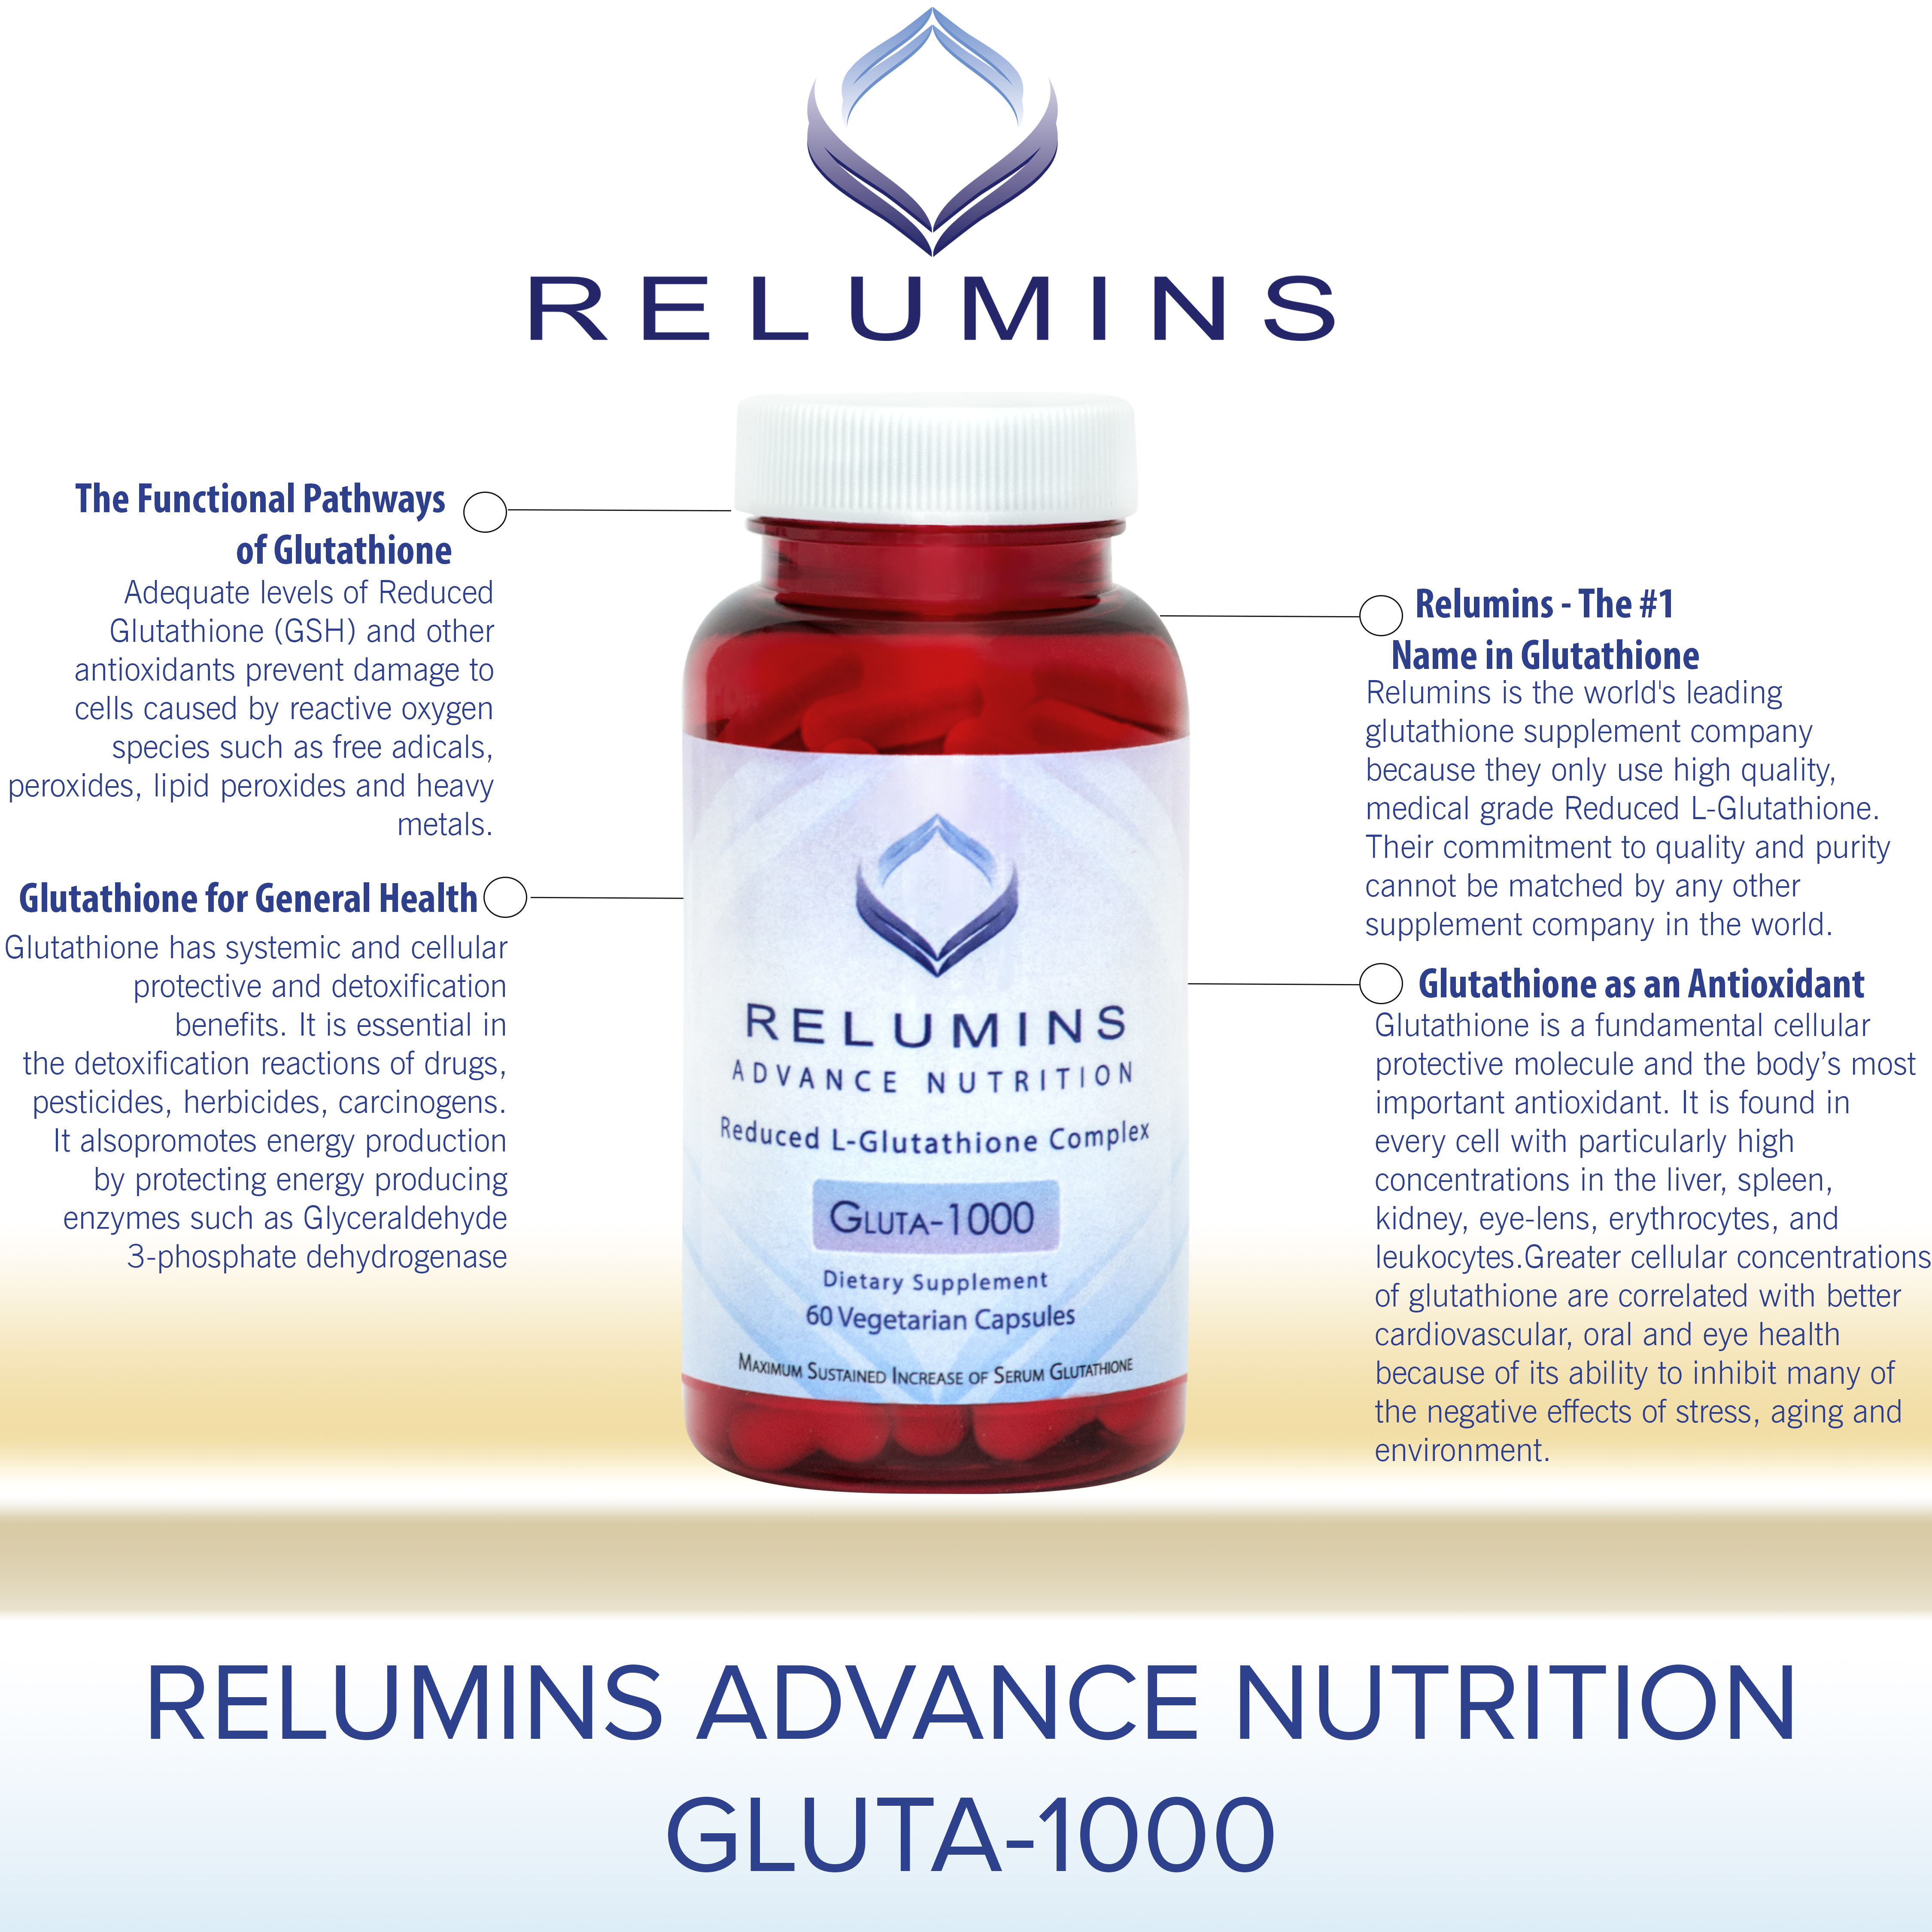 glutathione review Glutathione is an antioxidant used by every cell and tissue in the body although  critical for a number of processes, it has limited use as dietary.